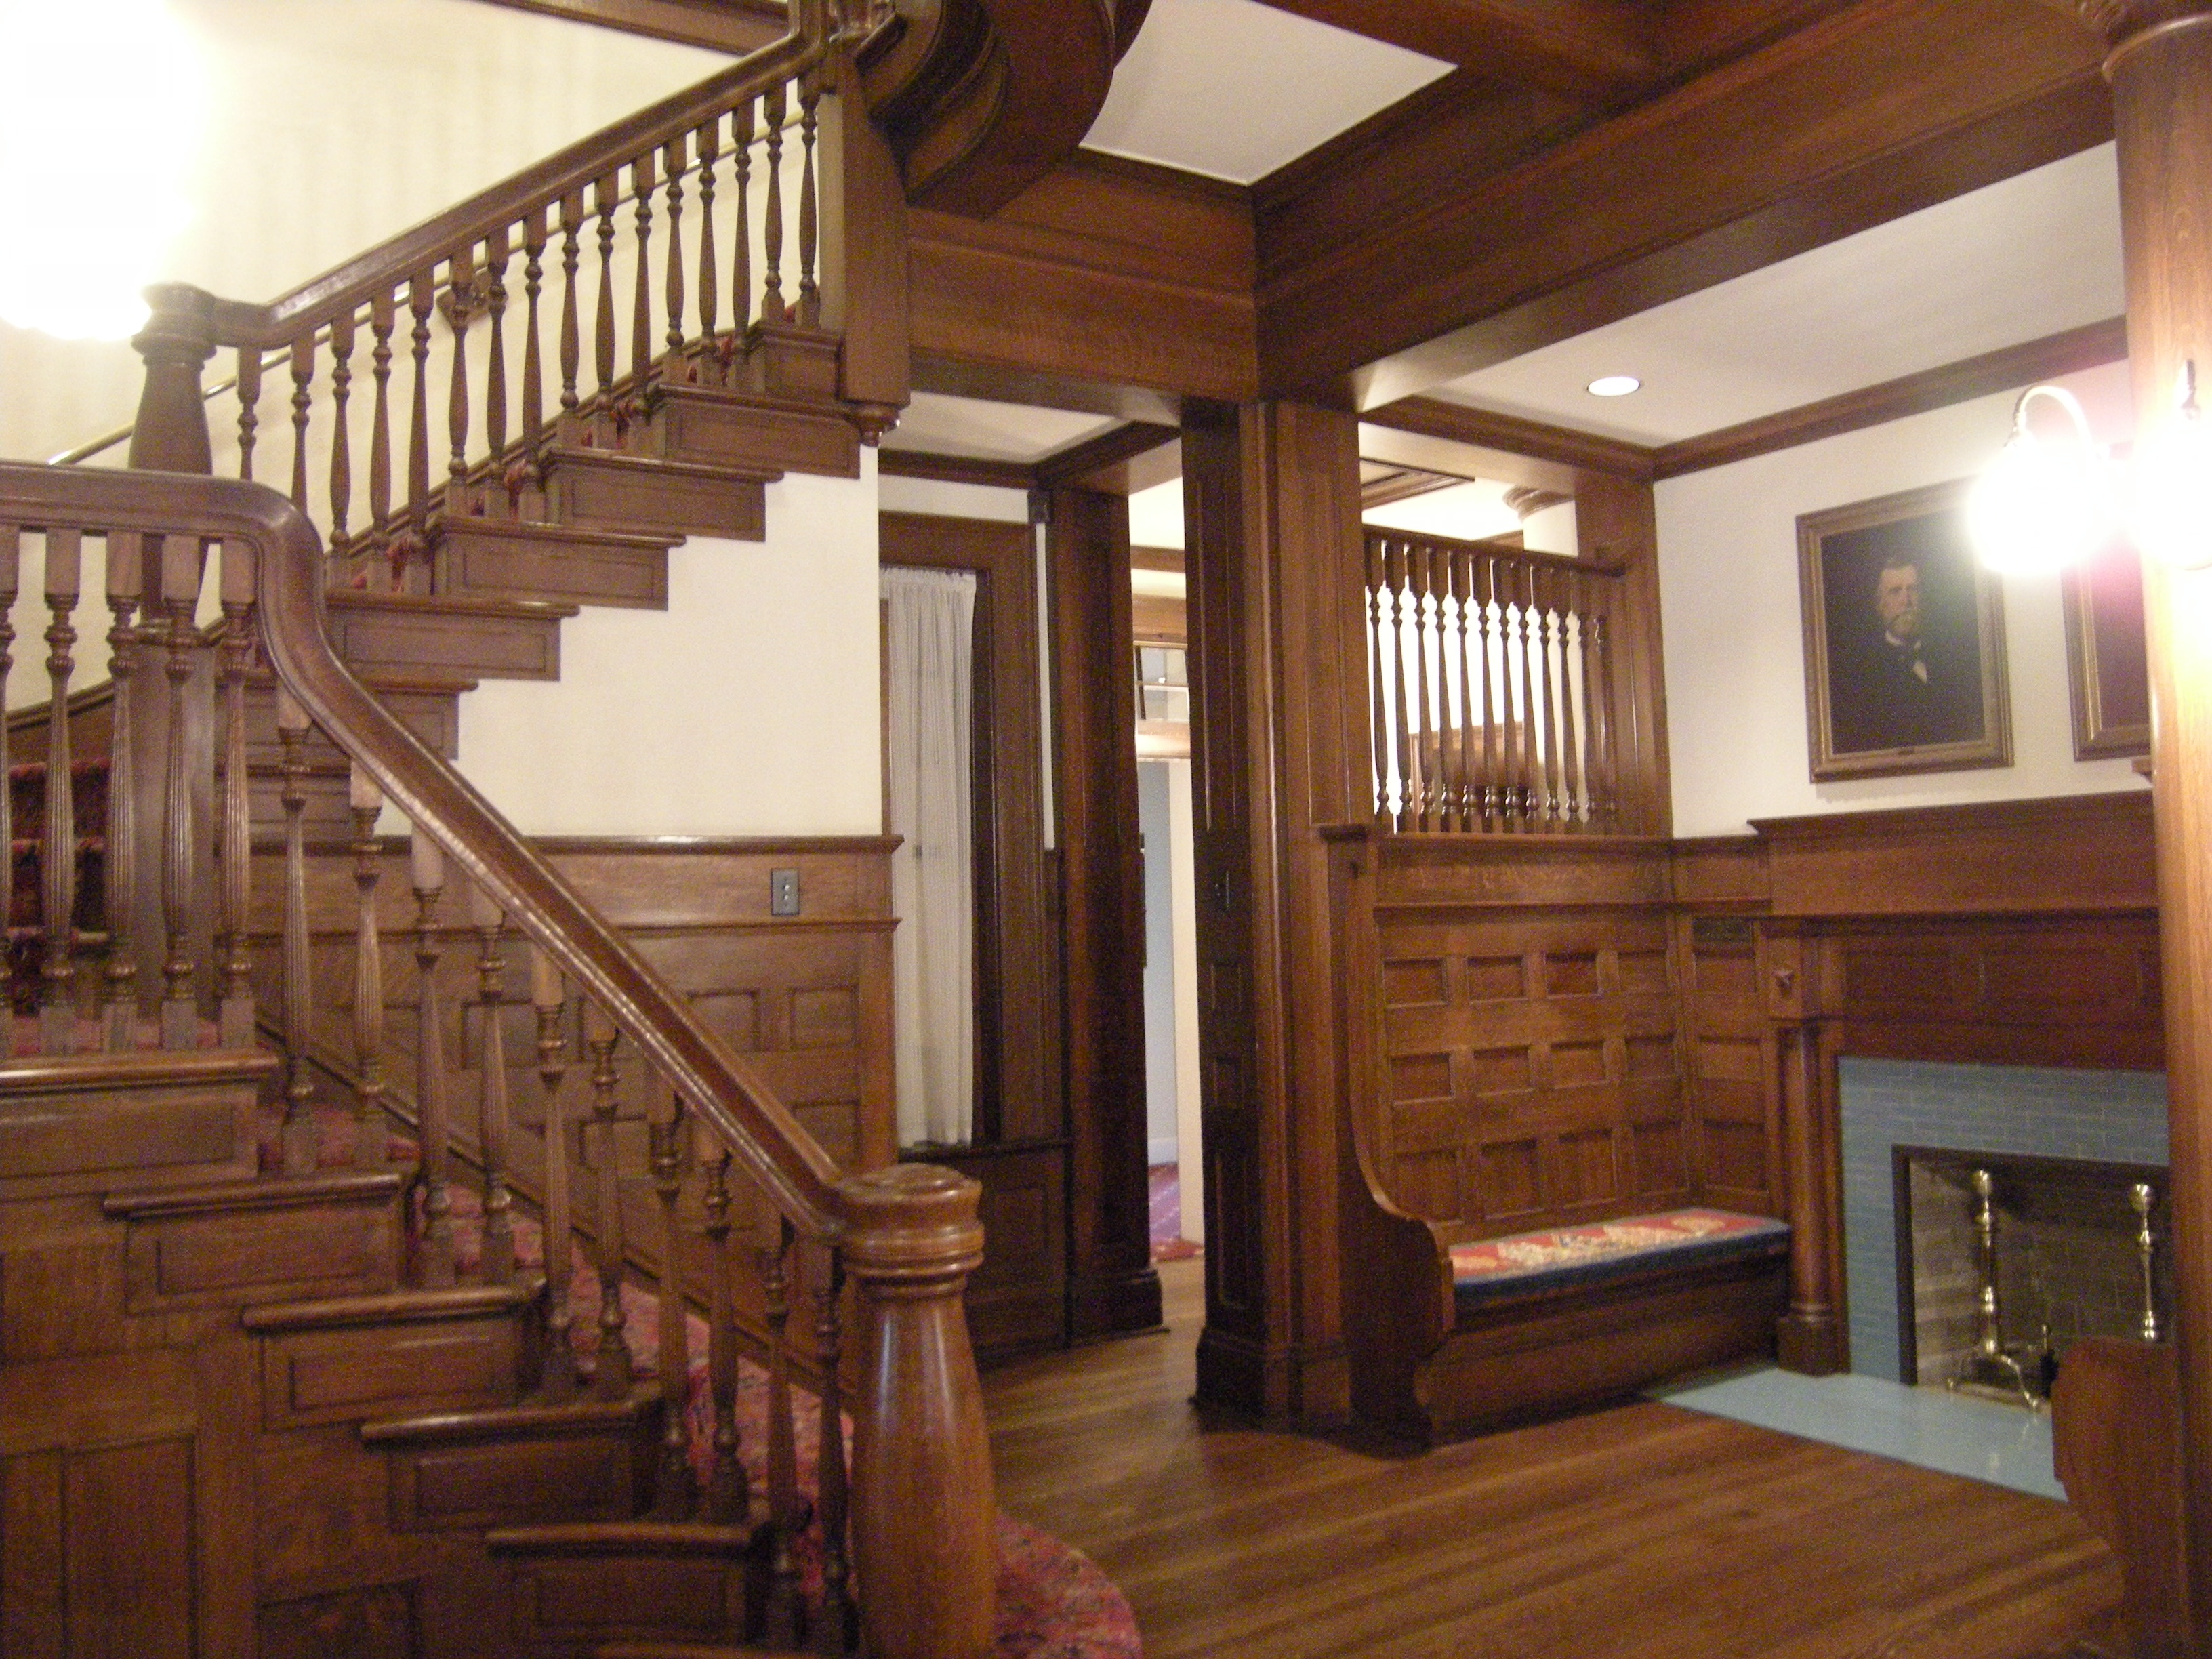 File dallas a h belo house interior wikimedia commons - House interiors ...